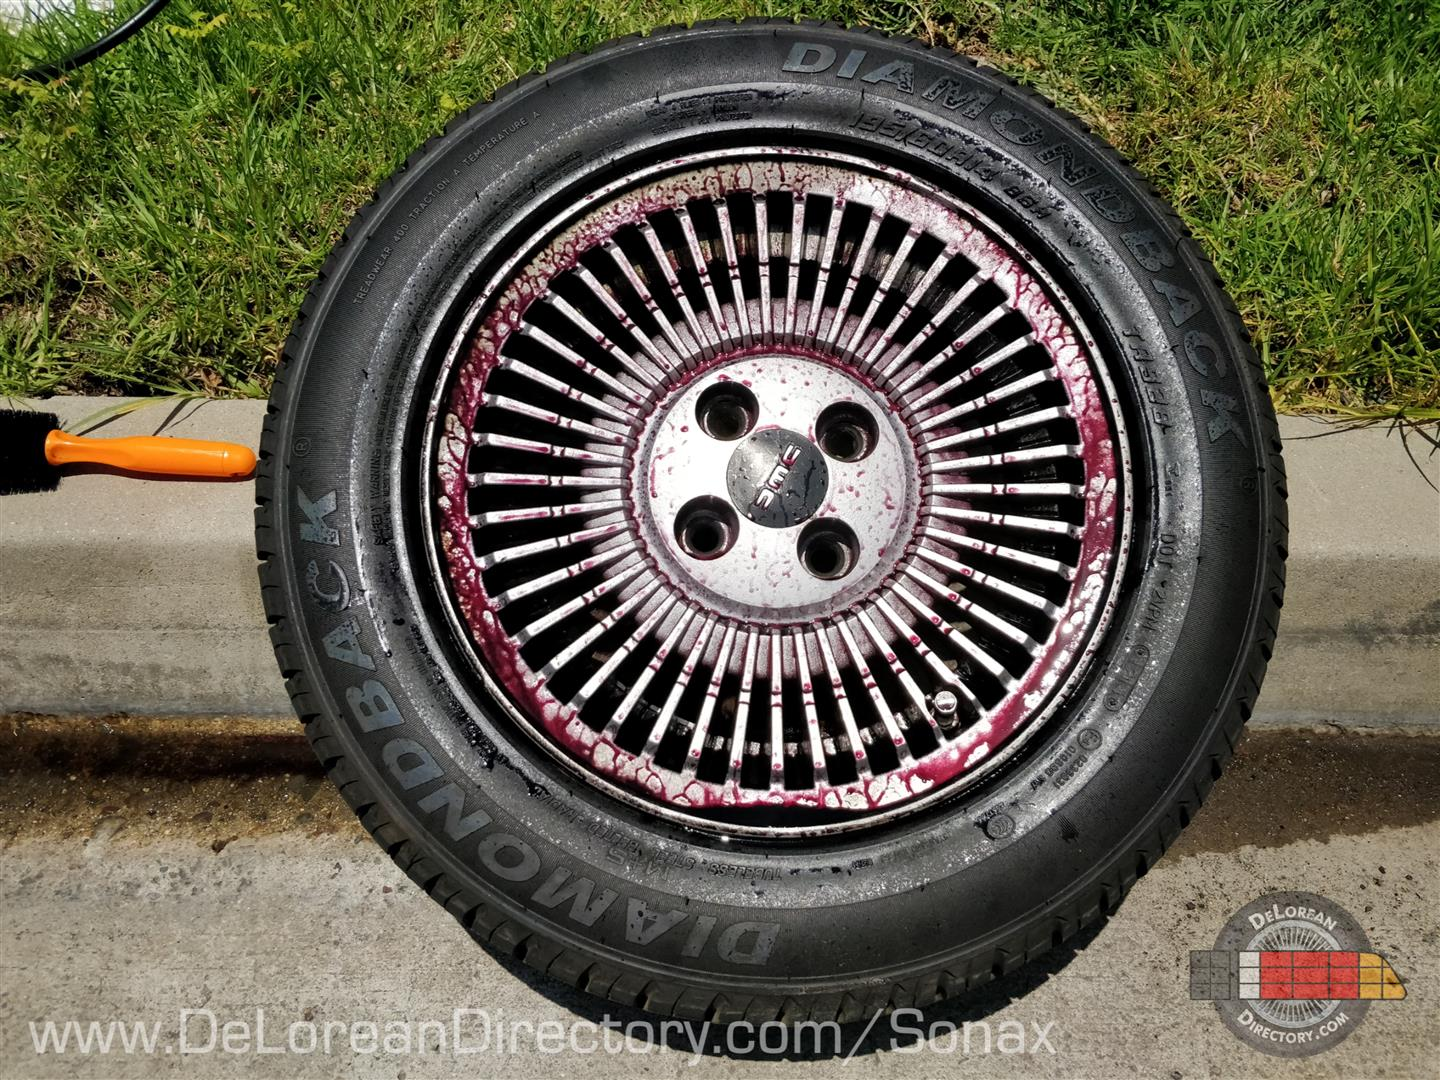 Sonax Wheel Cleaner Plus is Magic On DeLorean Rims | DeLoreanDirectory.com